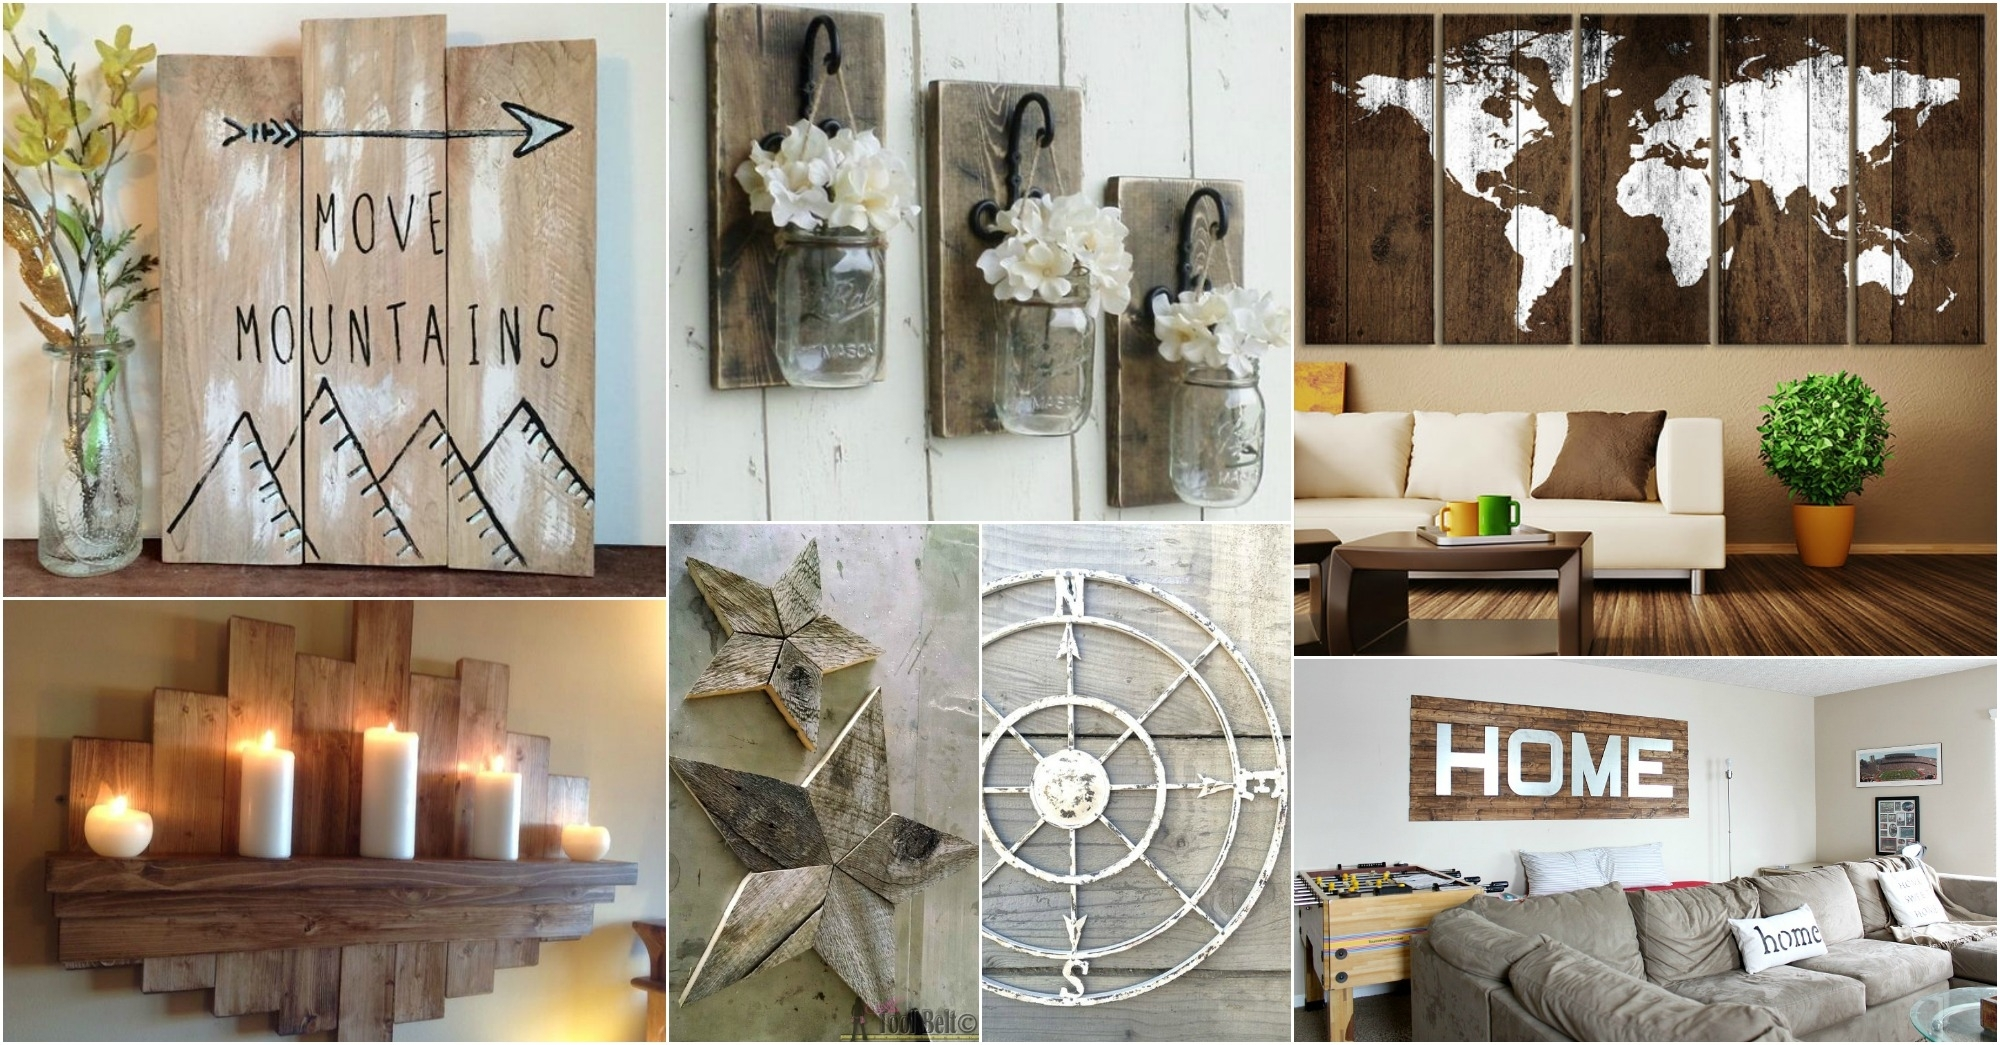 Rustic Wall Art Ideas To Spice Up The Atmosphere With Most Recently Released Rustic Wall Art (Gallery 6 of 15)